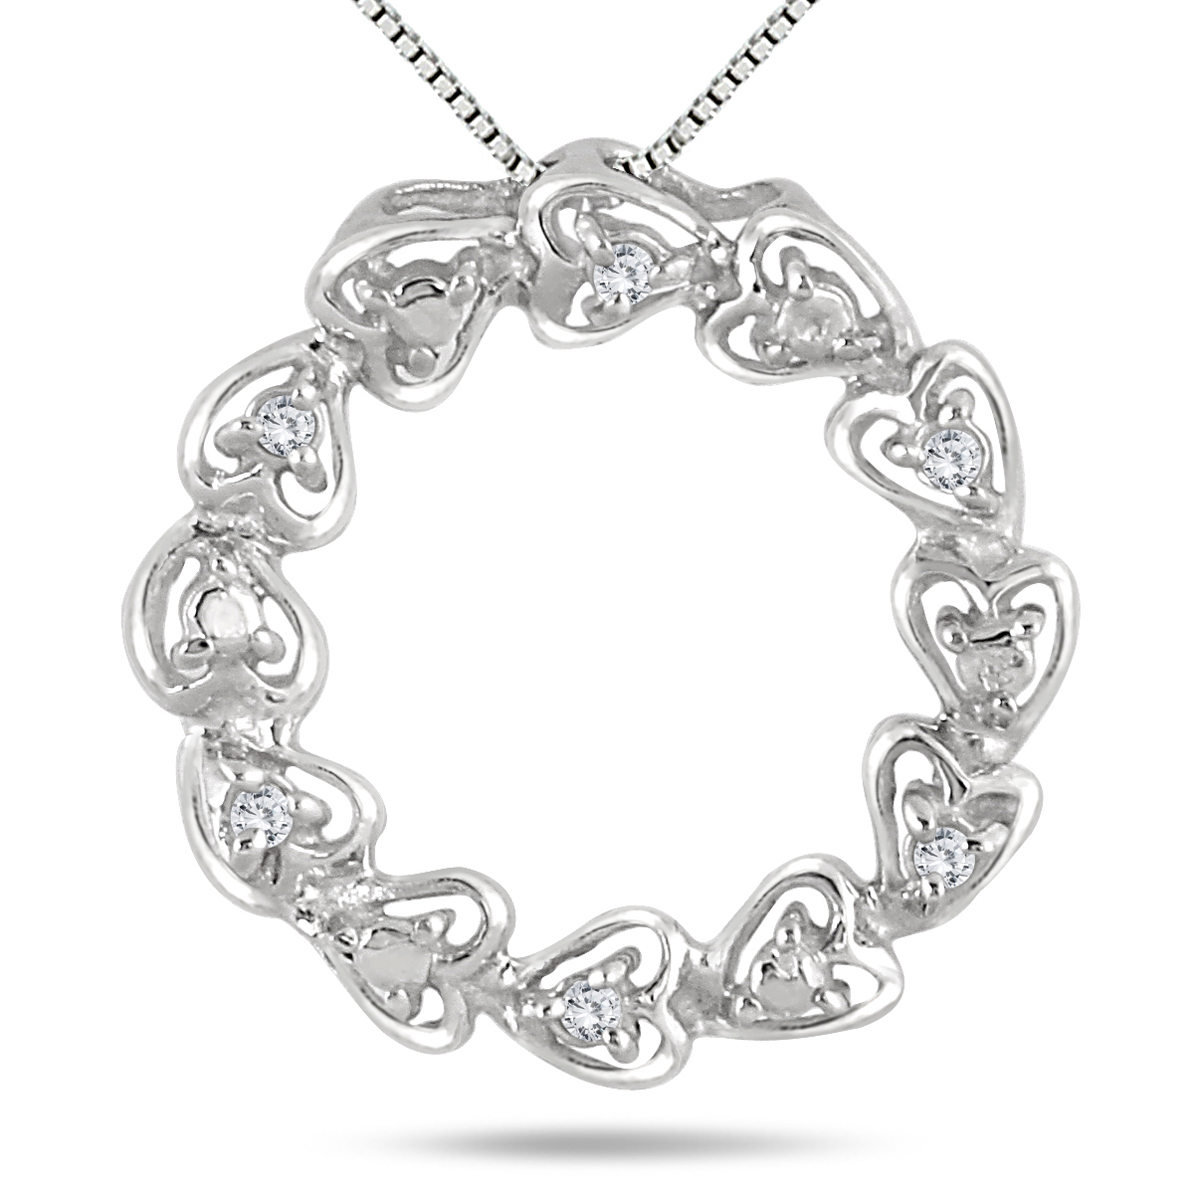 1/10 Carat Diamond Circle Heart Pendant in .925 Sterling Silver